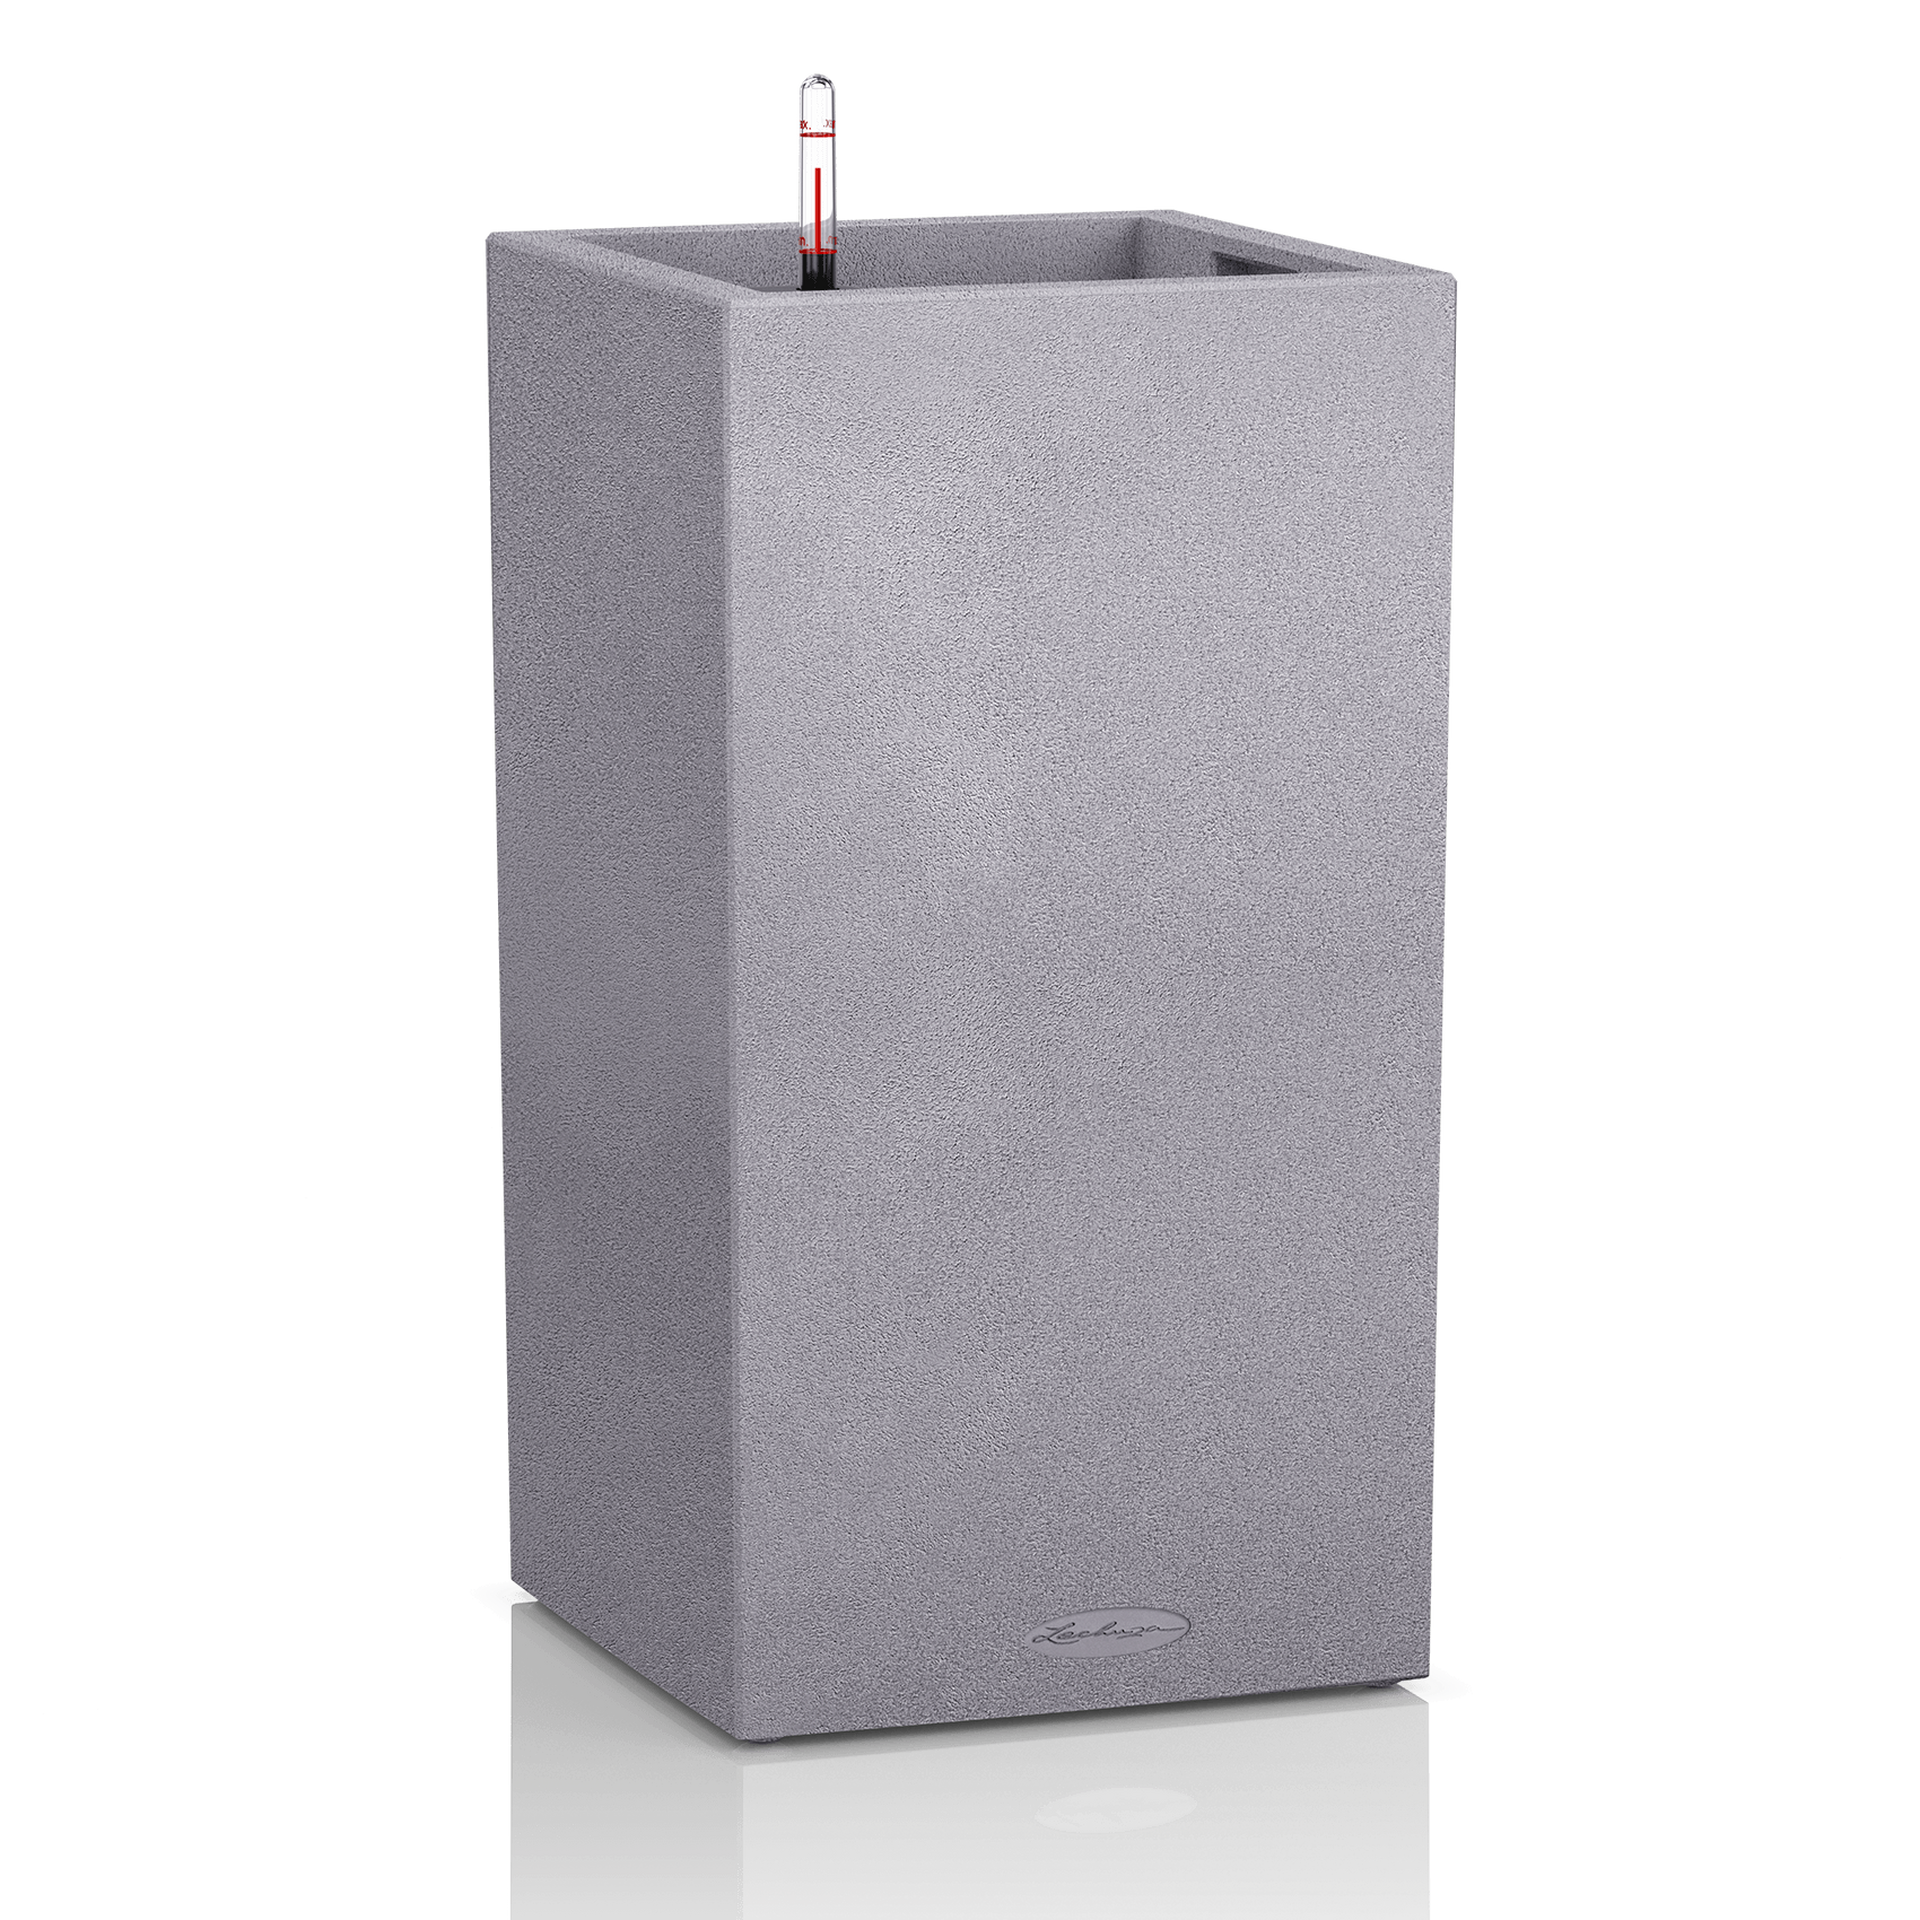 CANTO Stone 40 high gris pierre